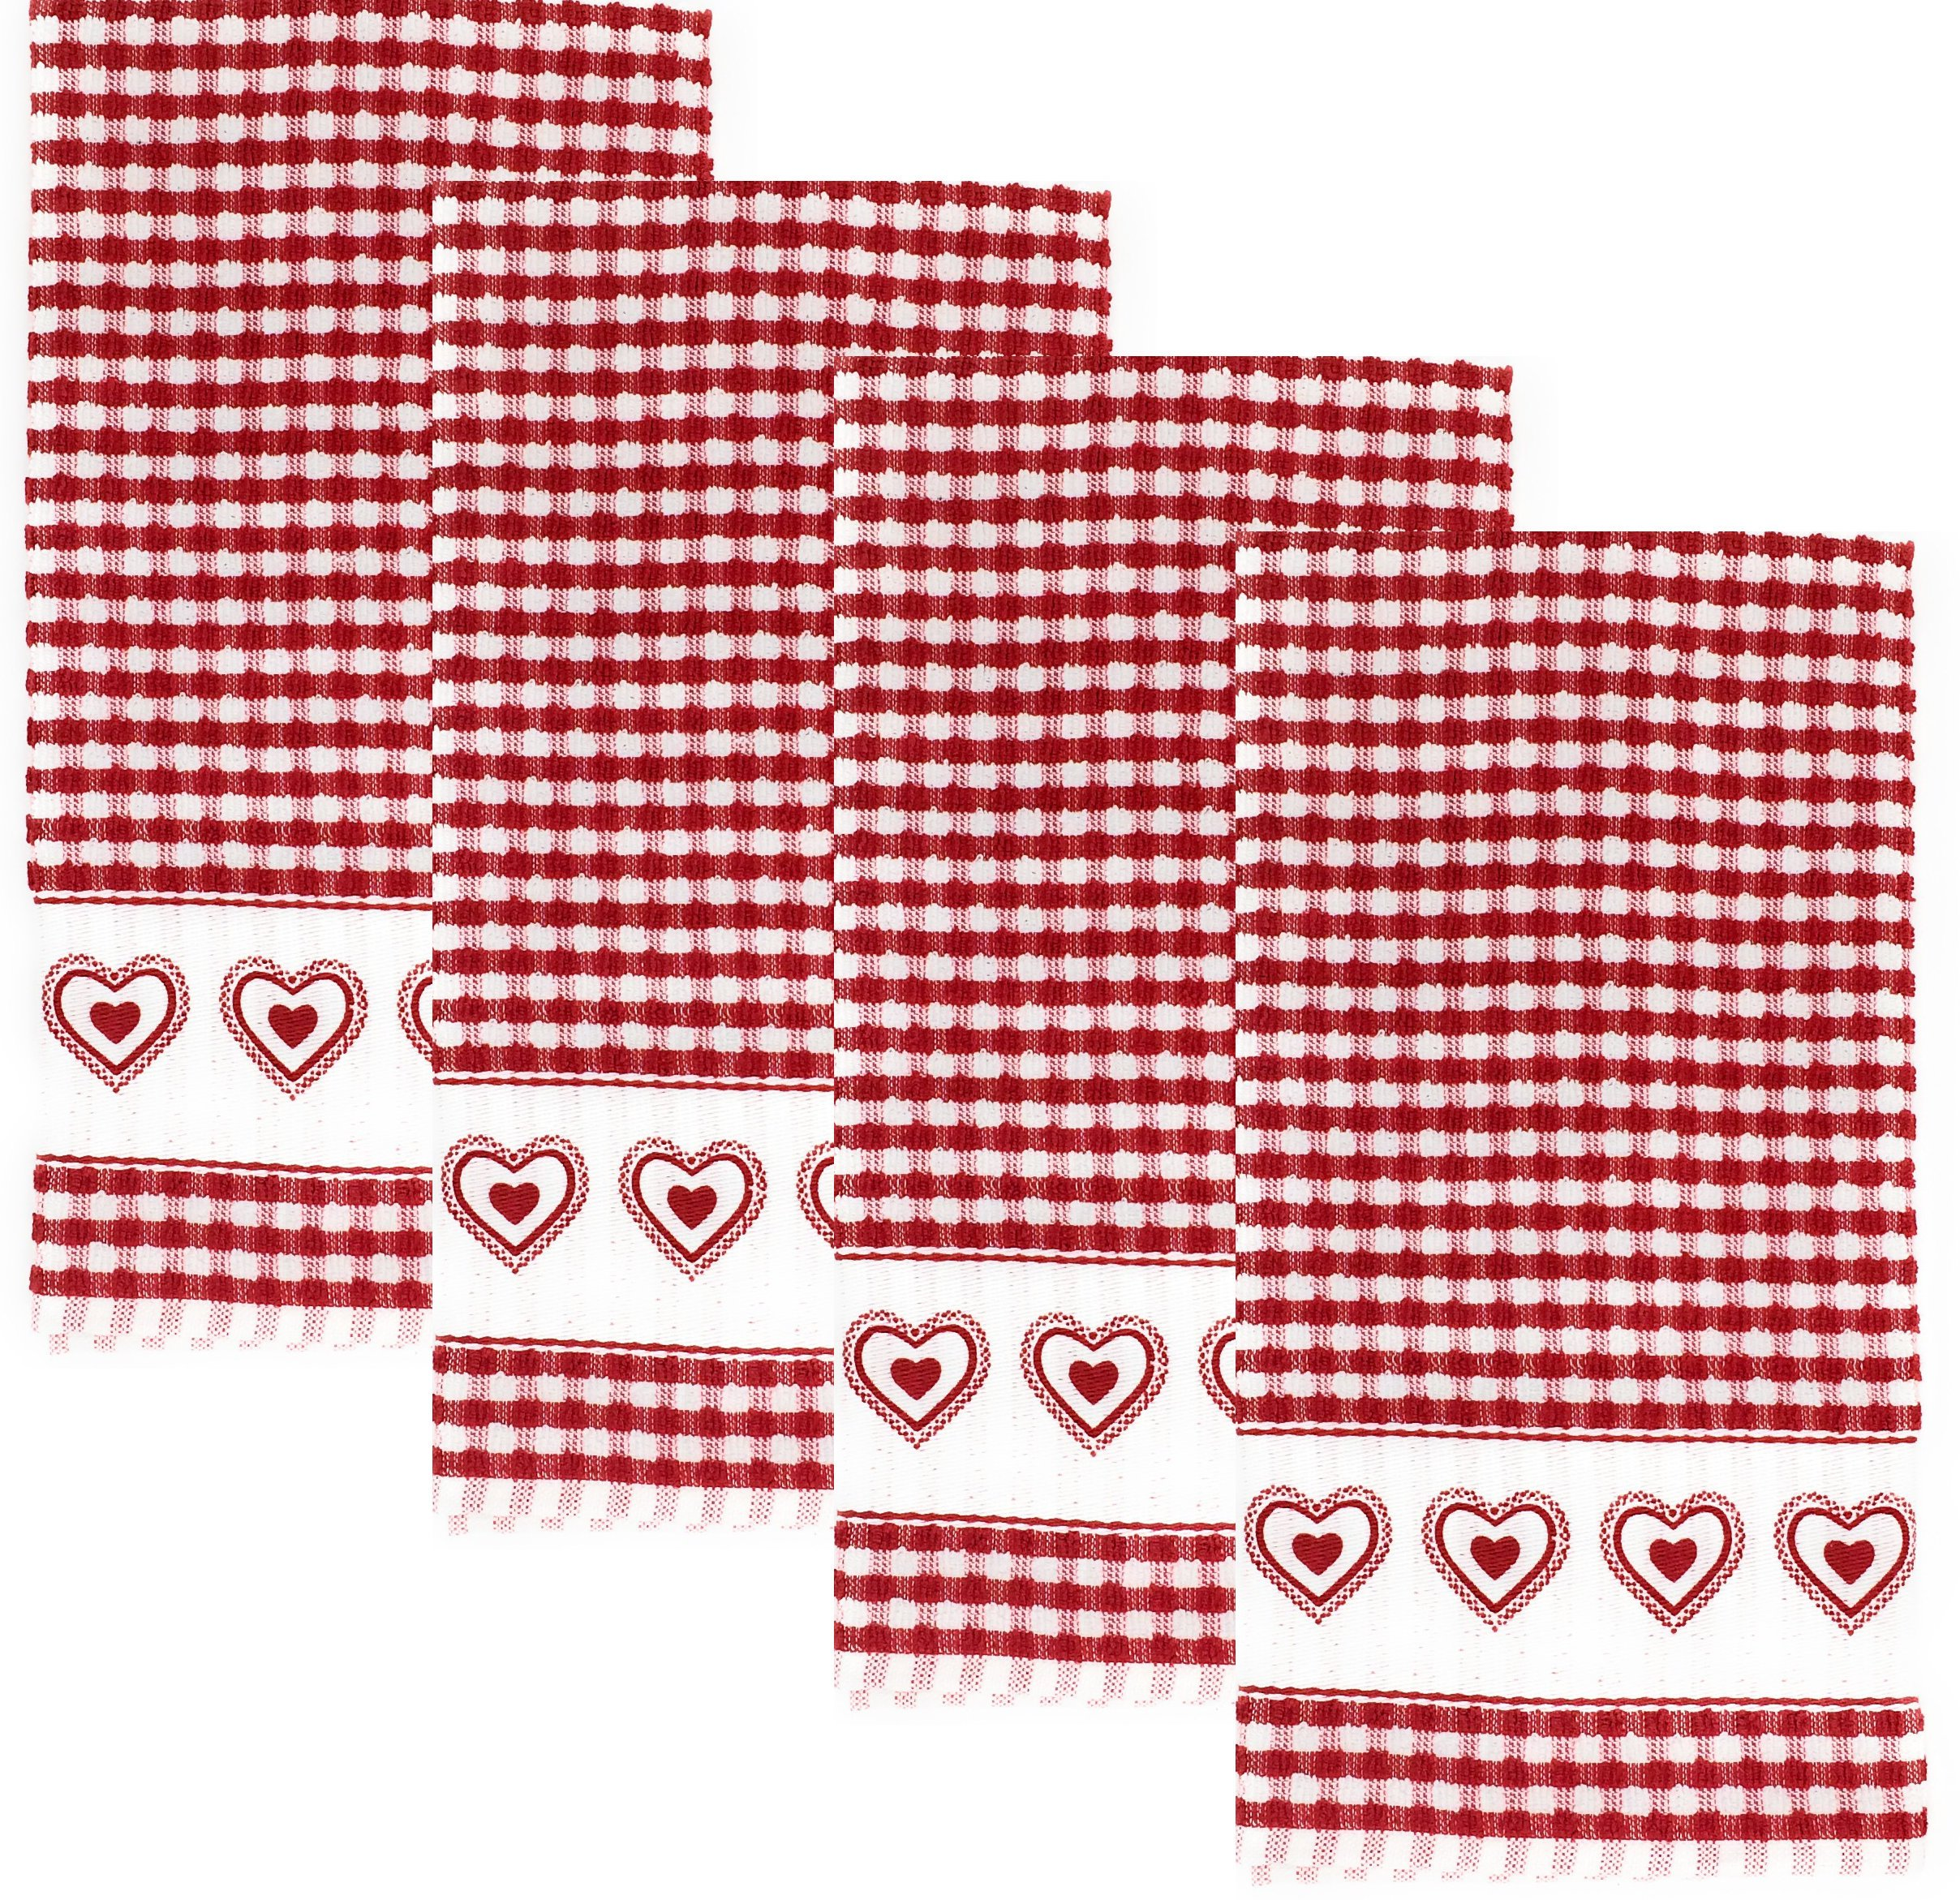 Double Heart Terrycloth Kitchen Towels, Set of 4 (Red)